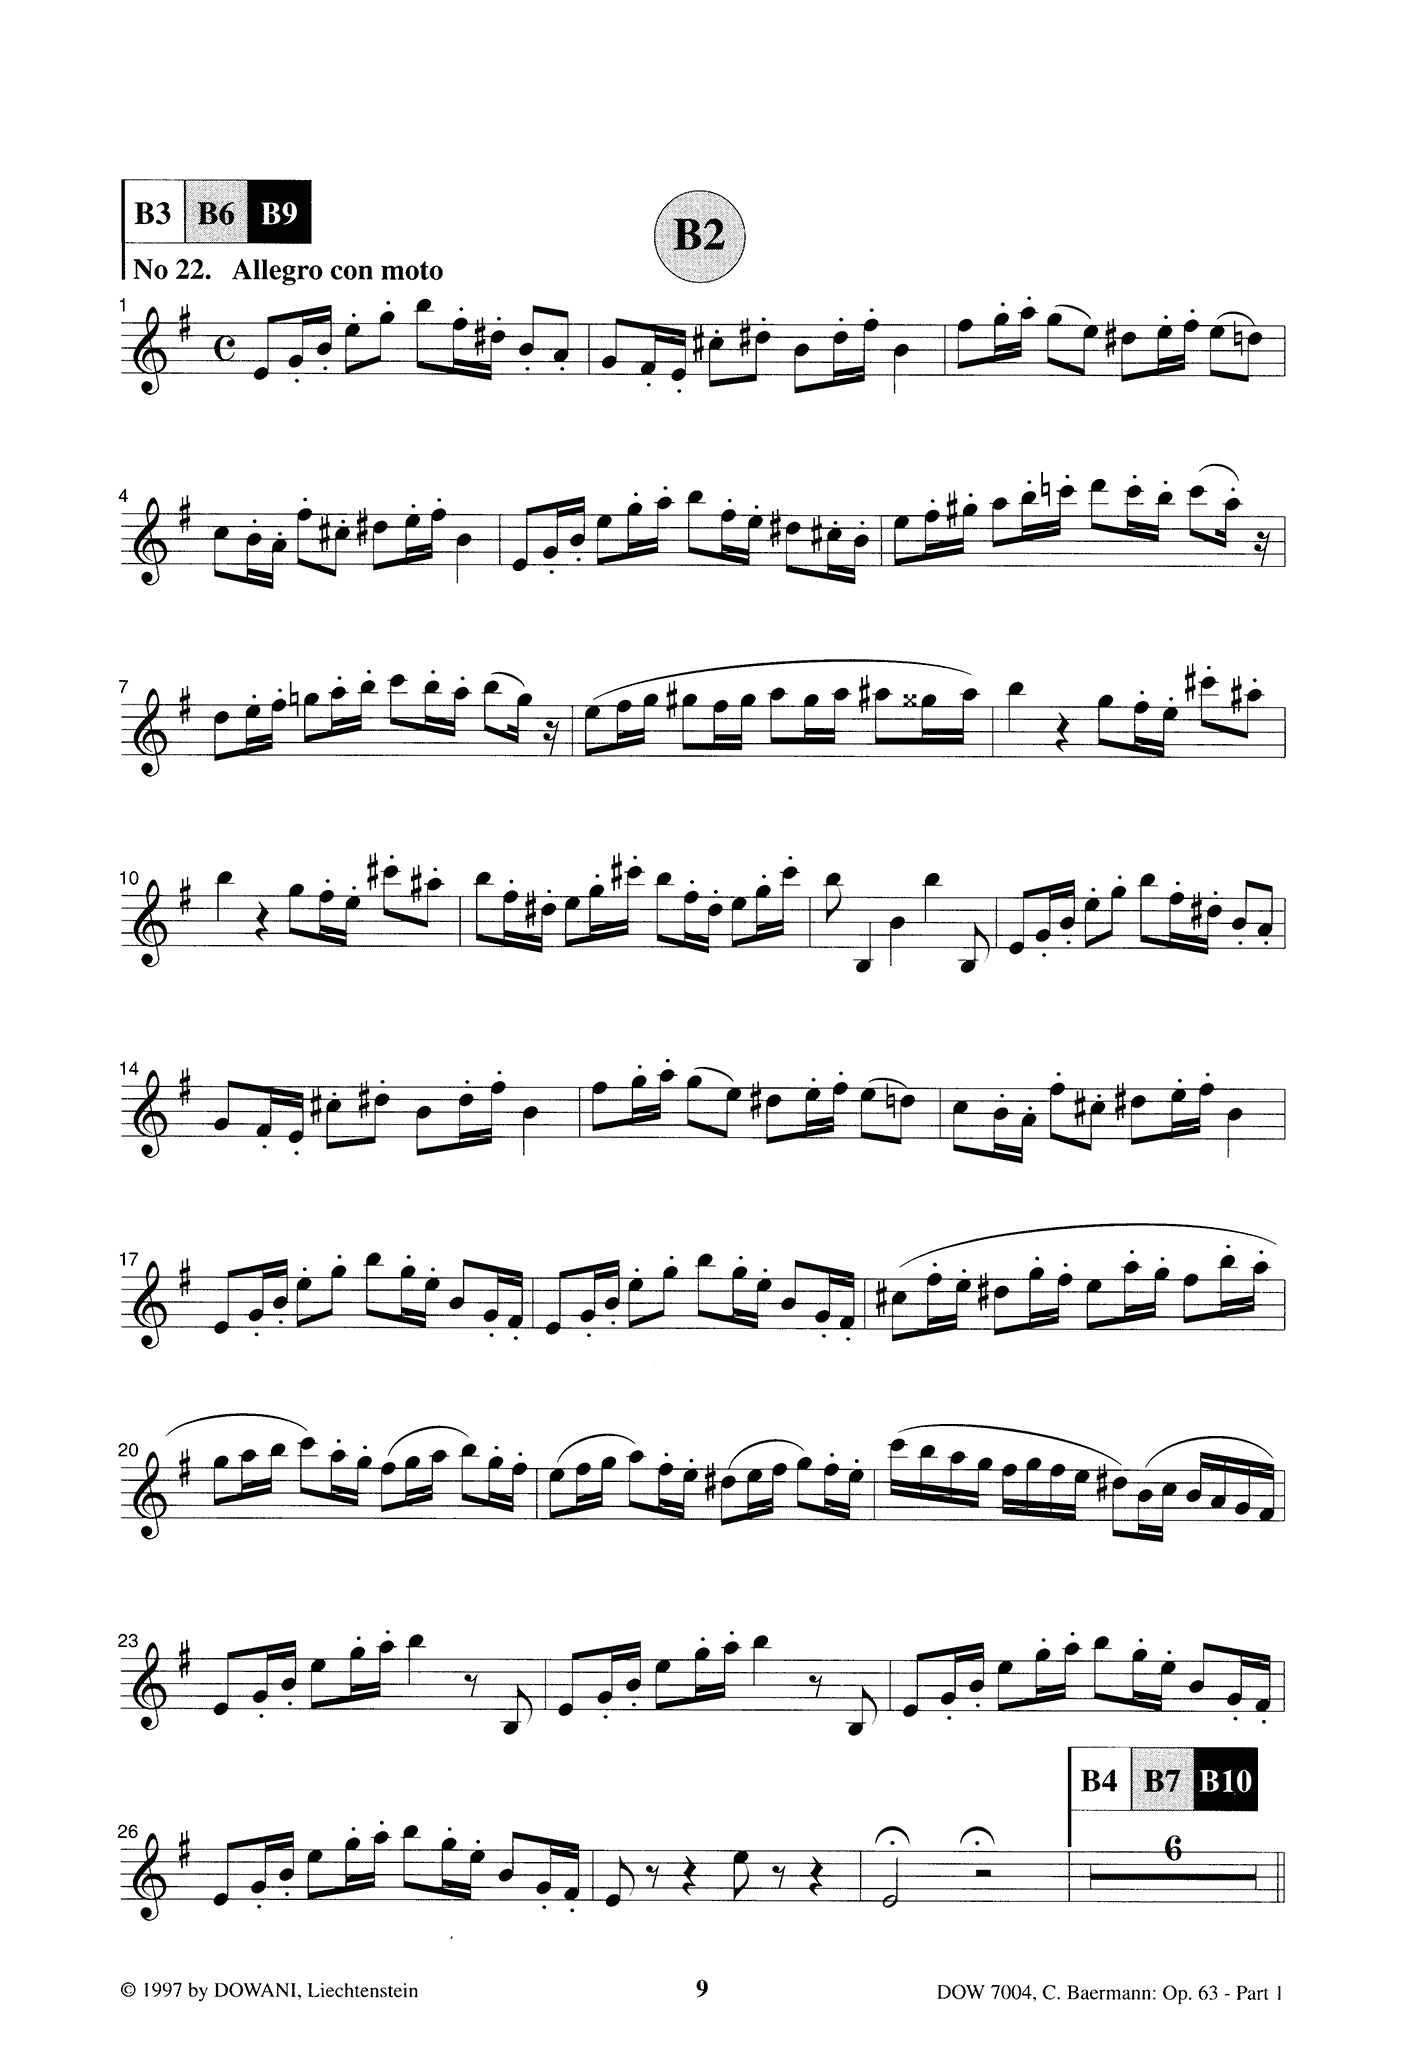 Clarinet Method, Op. 63, Div. II: Part 1 of 3 Clarinet part Page 9